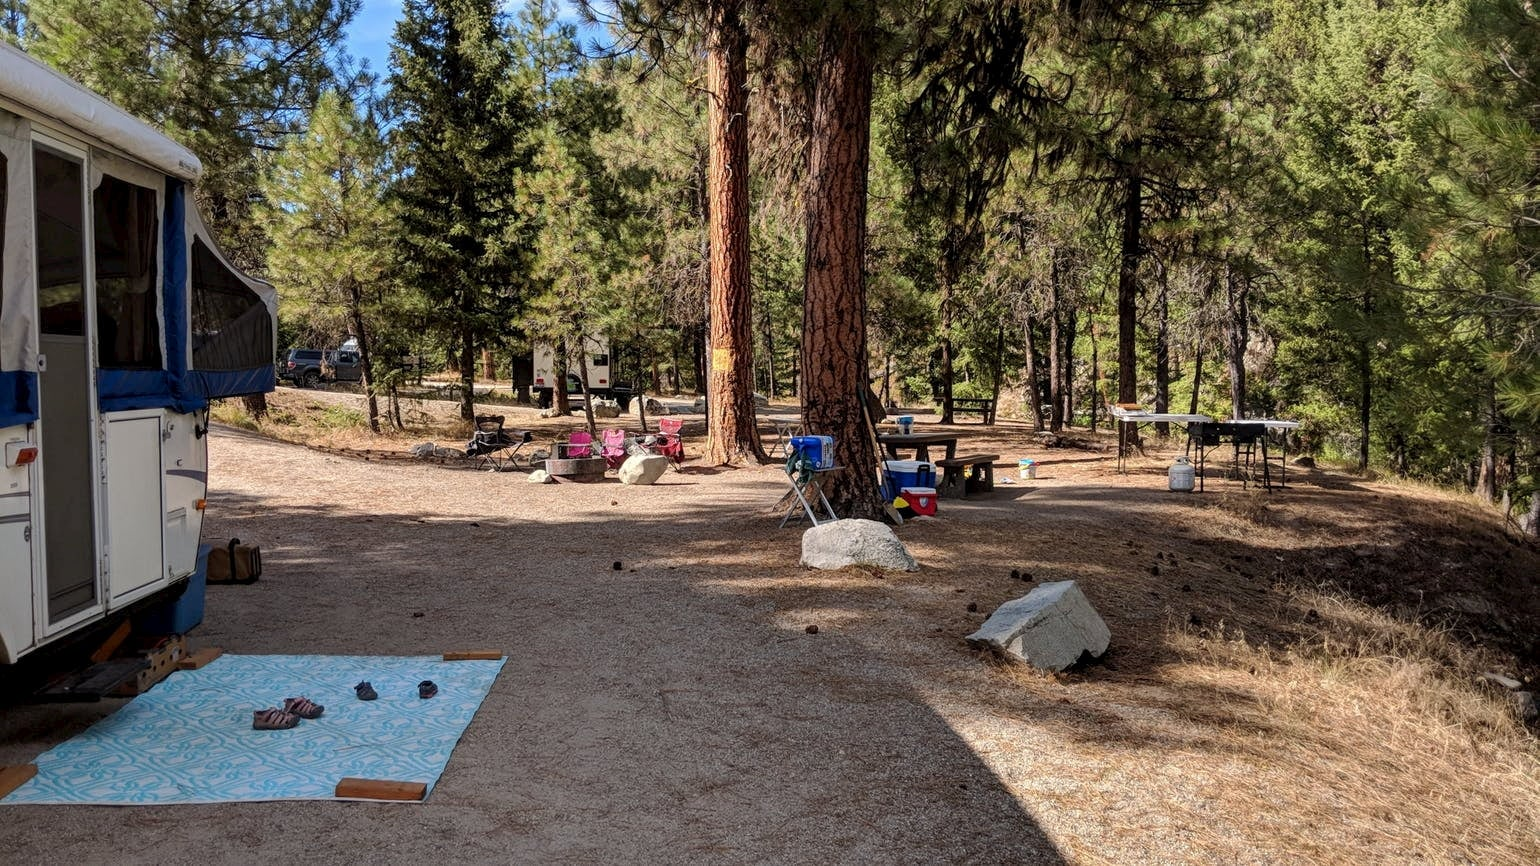 Wooded campground with dispersed campers and camp chairs.